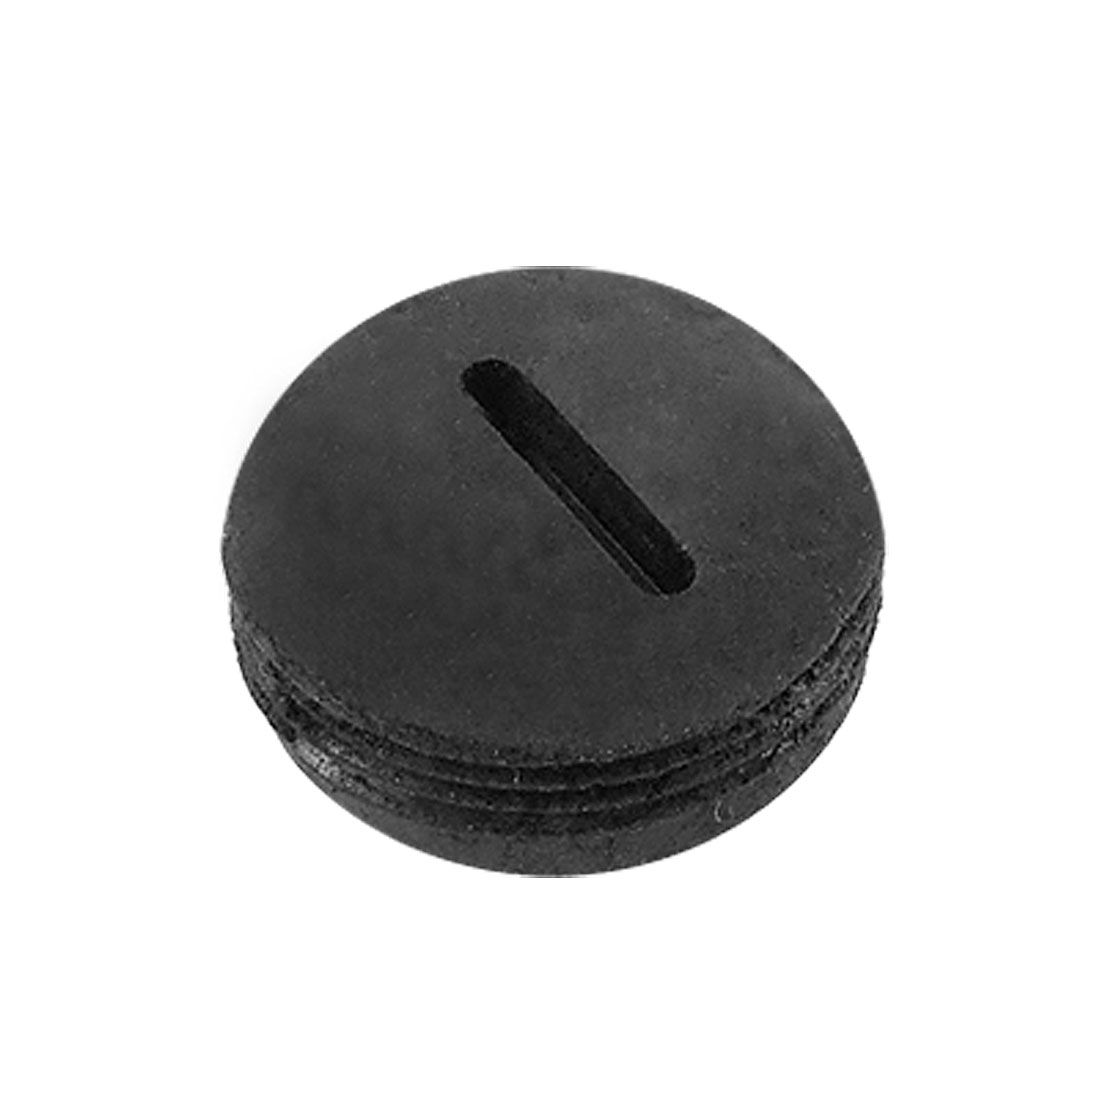 16.5mm Diameter Carbon Brush Holder Cap 10 Pairs for Motor